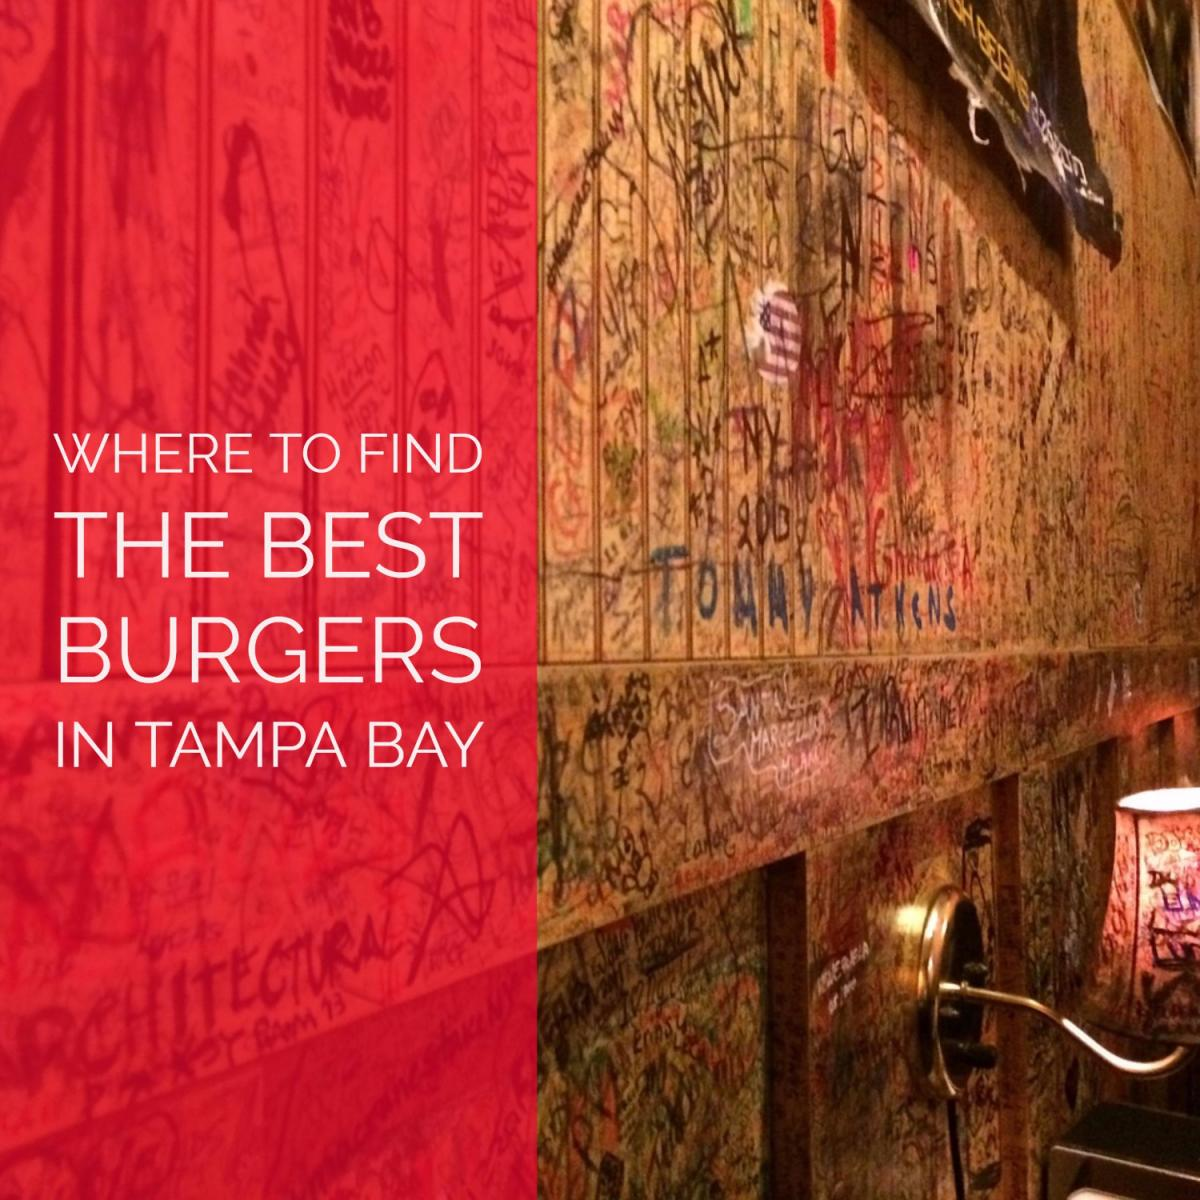 Where to Find the Best Burgers in Tampa Bay